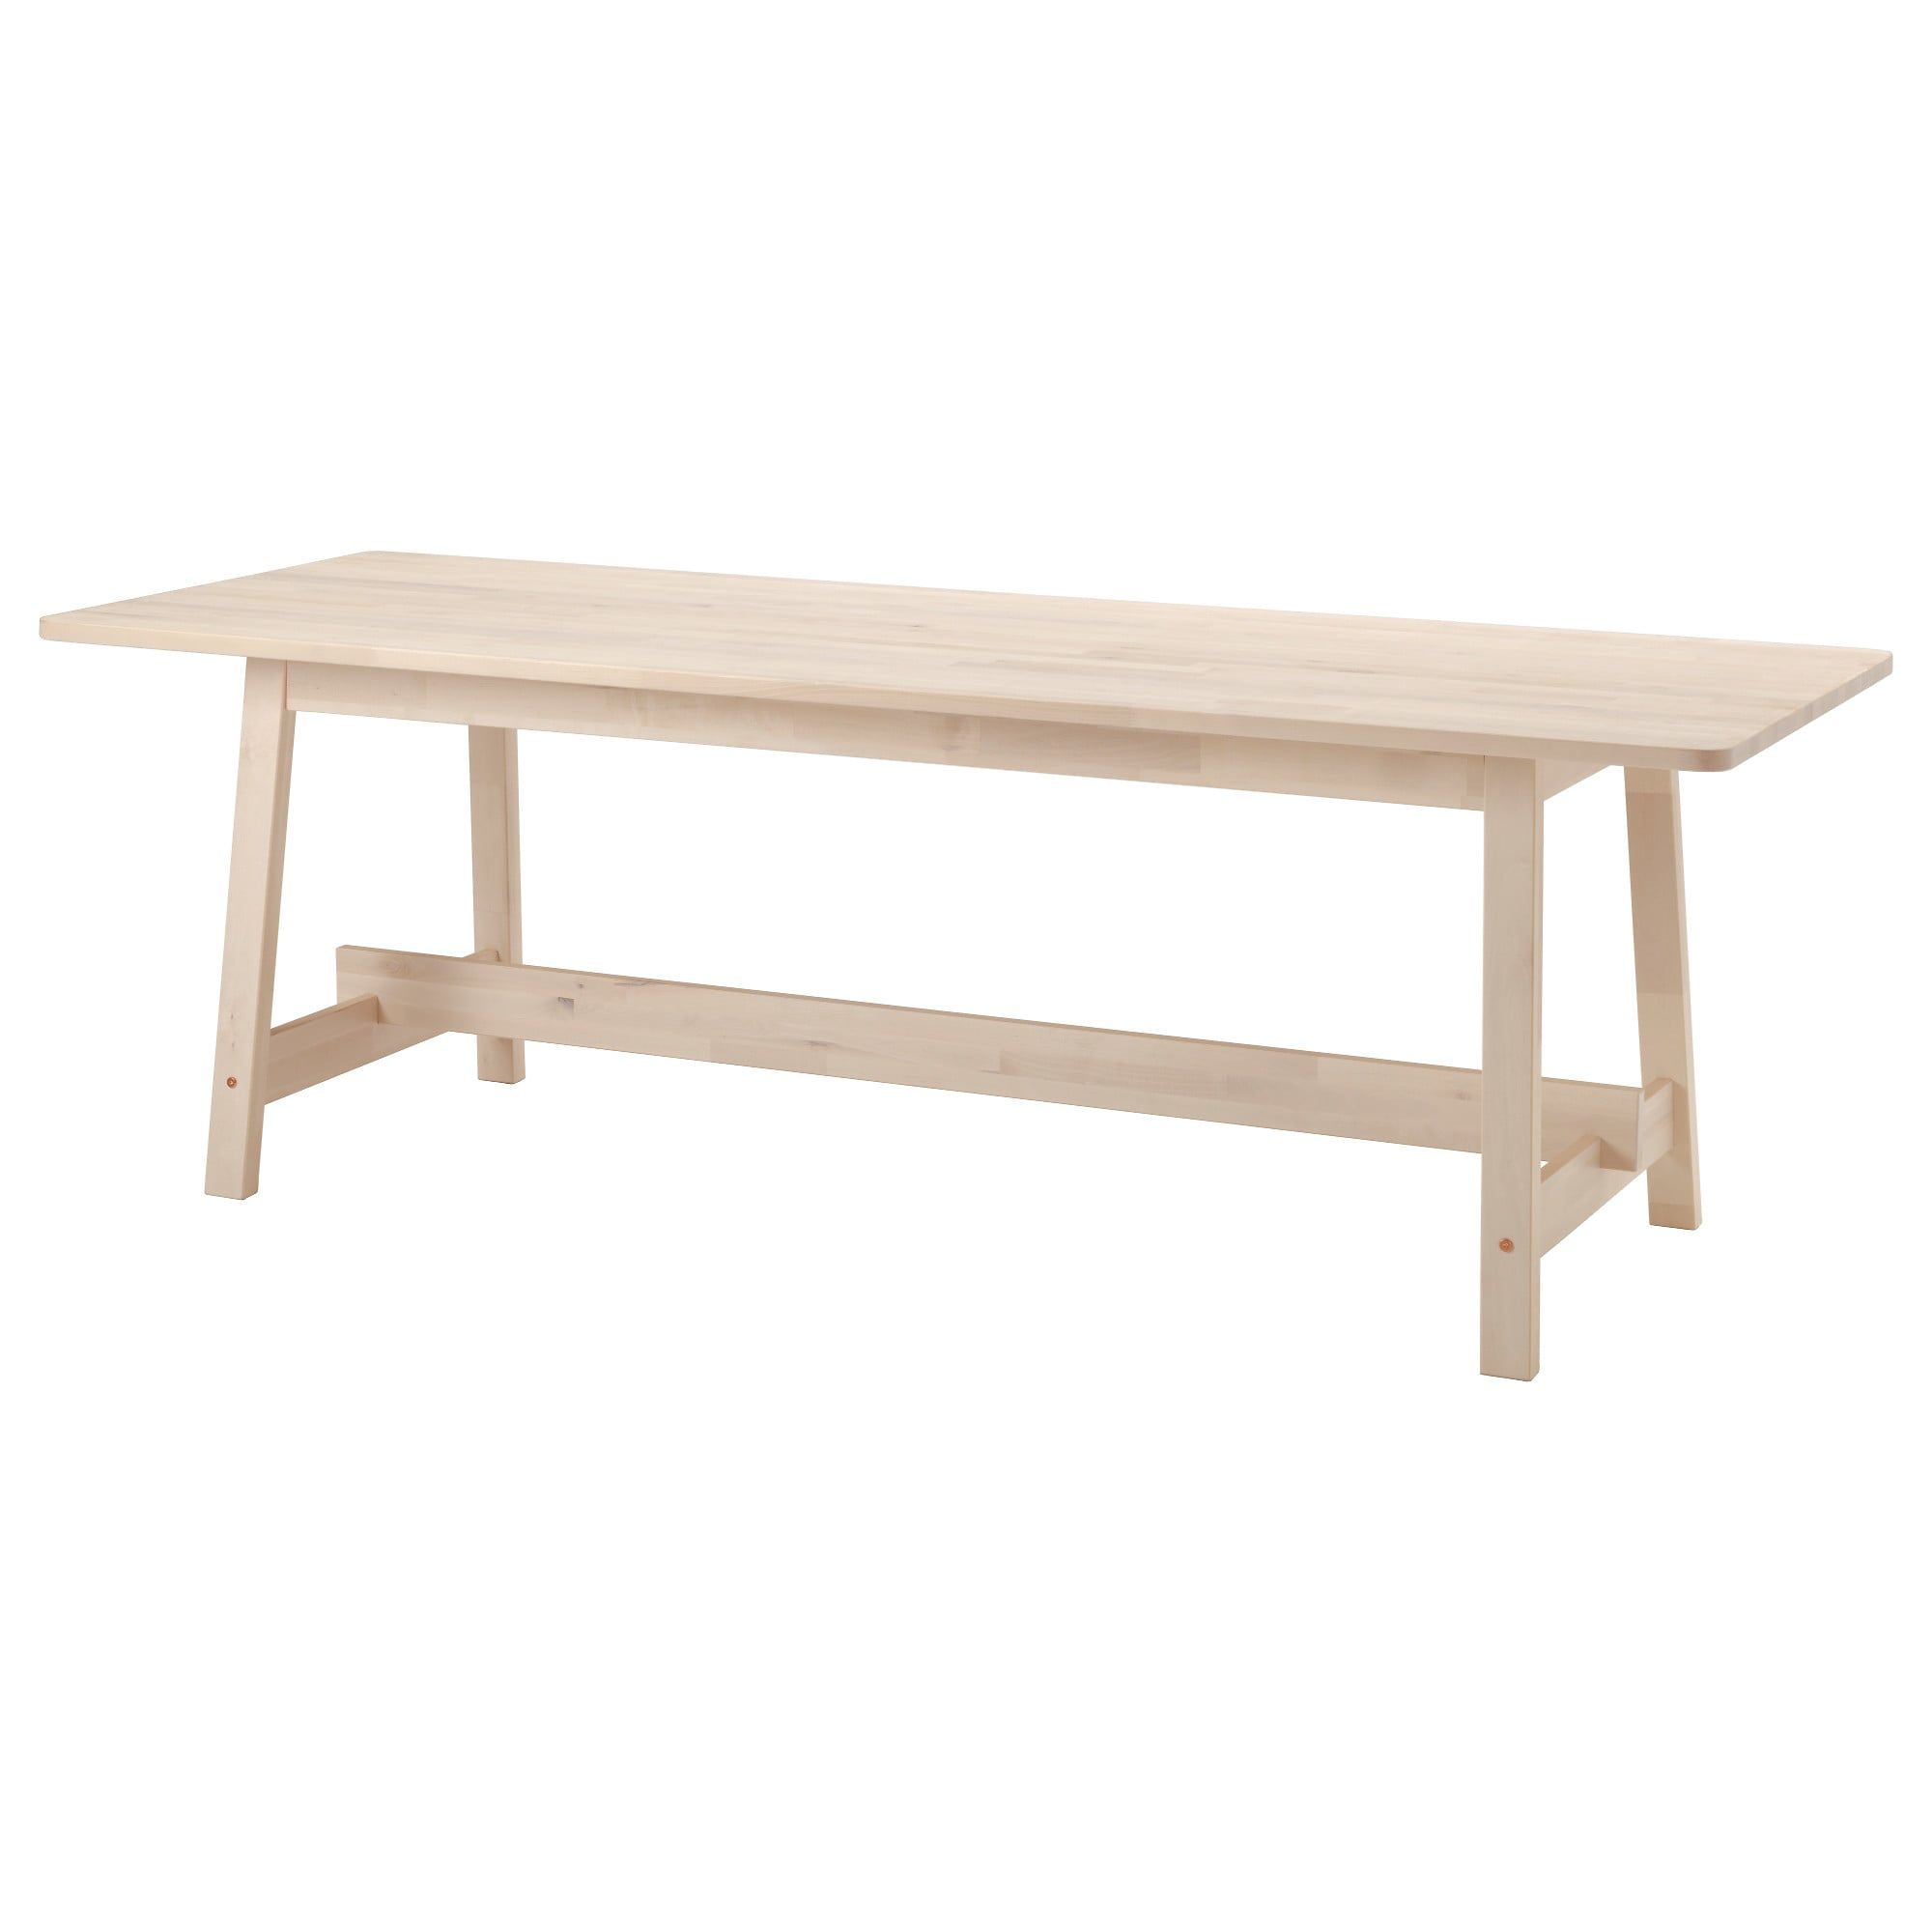 Us Furniture And Home Furnishings Ikea Dining Table Dining